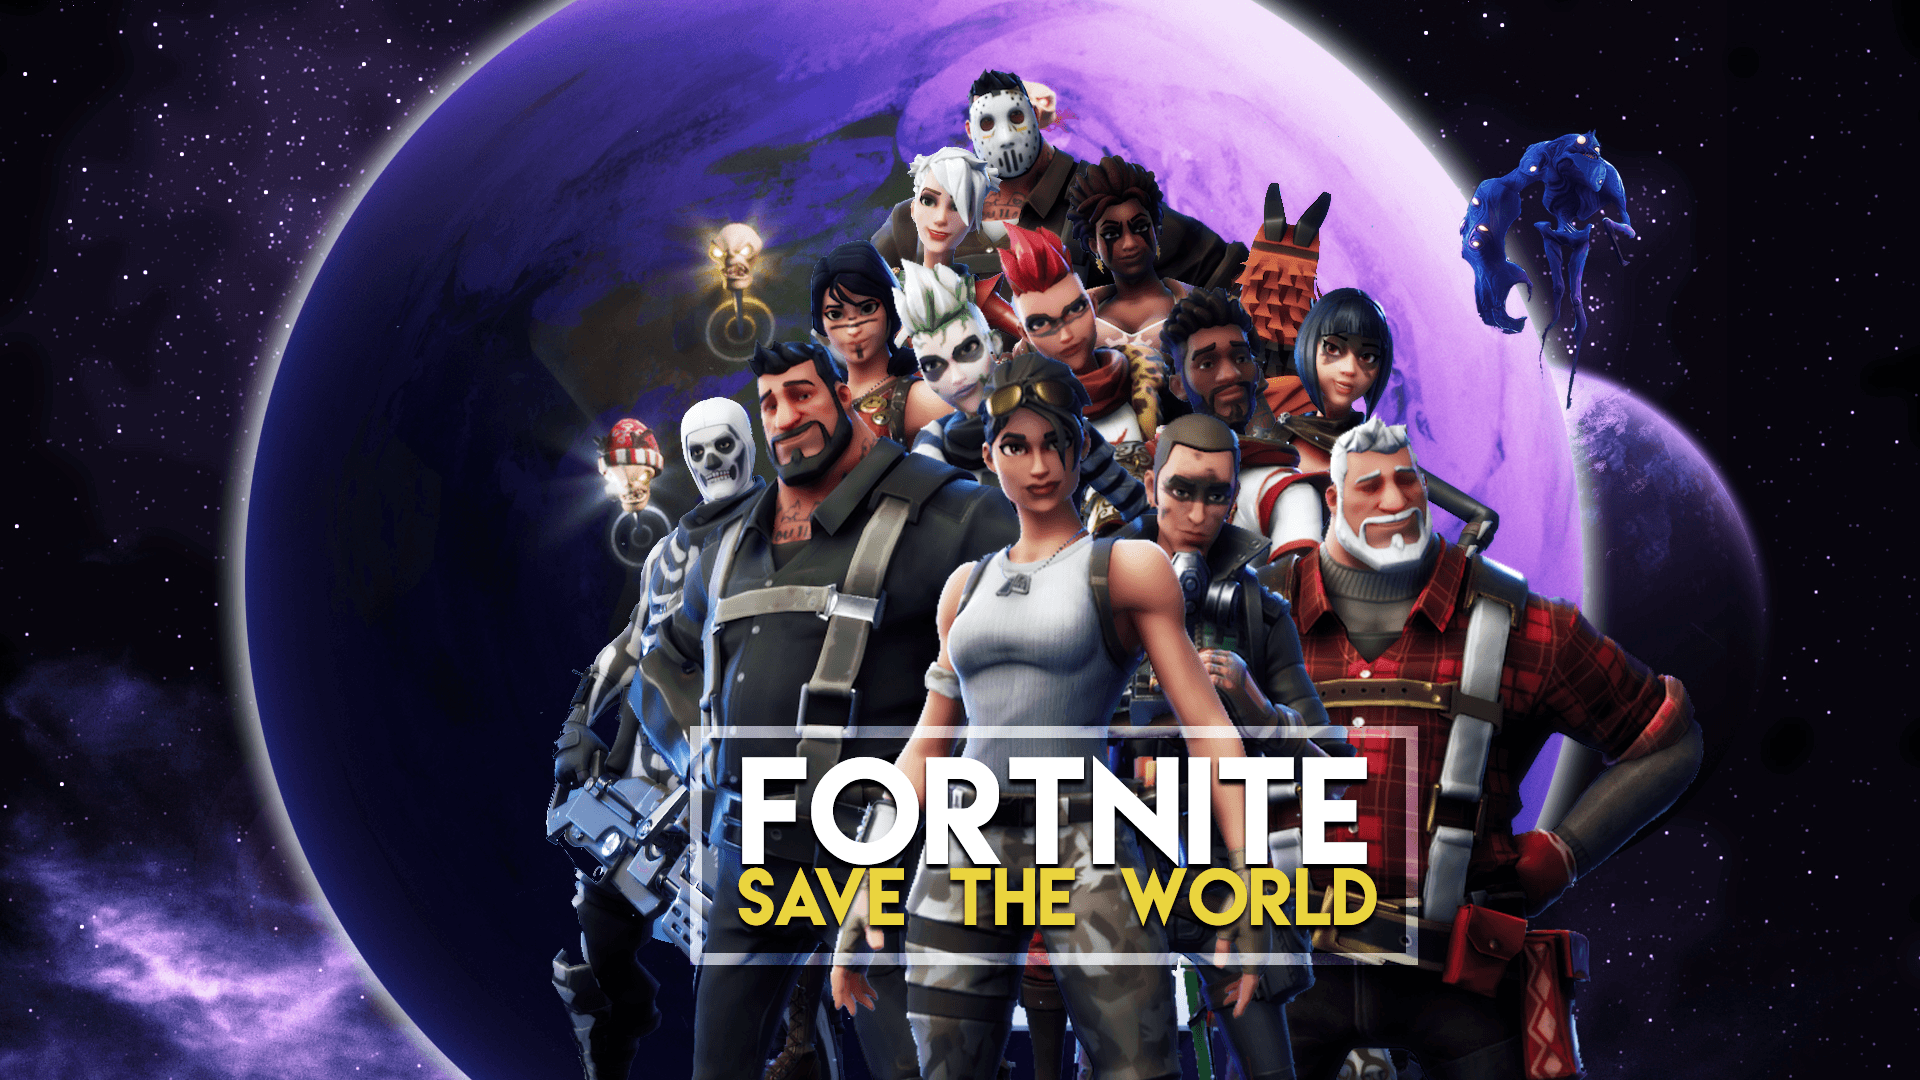 1920x1080 Made A New Wallpaper What Do You Guys Think Fortnite Fortnite Wallpaper Backgrounds 1080p Wallpaper